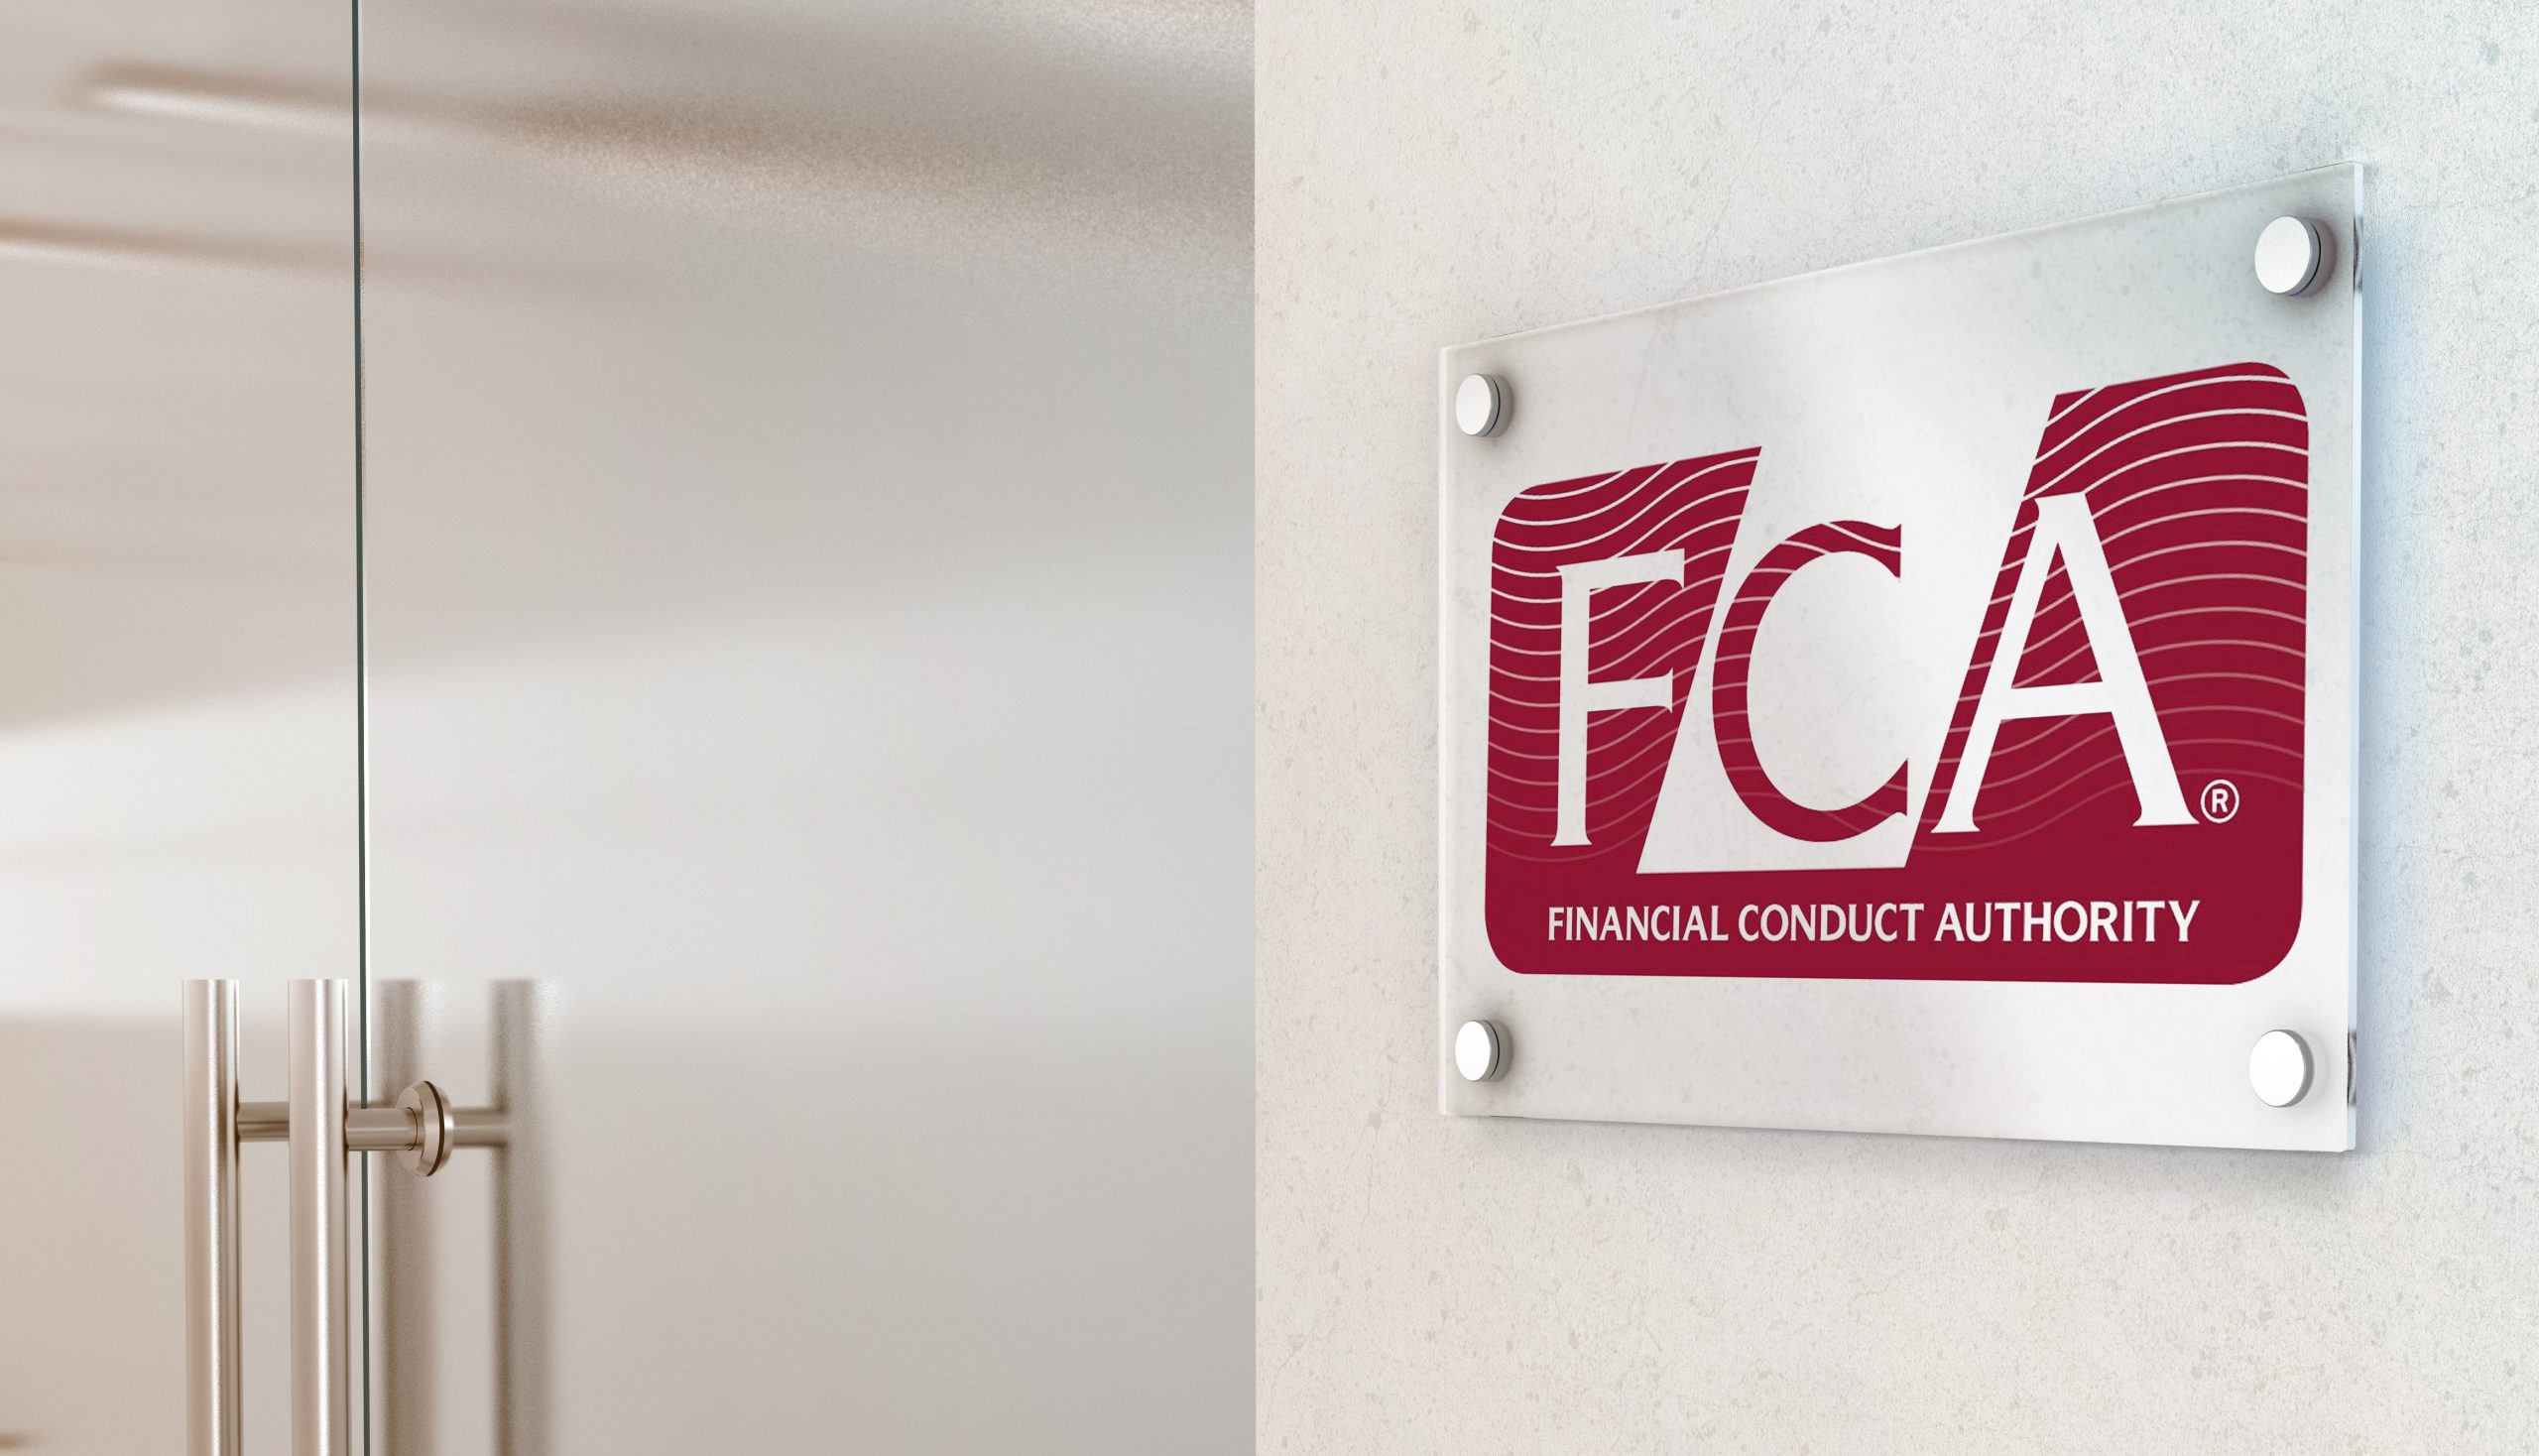 FCA Issues Warning Letter to Banks Over Anti-Money Laundering Failings